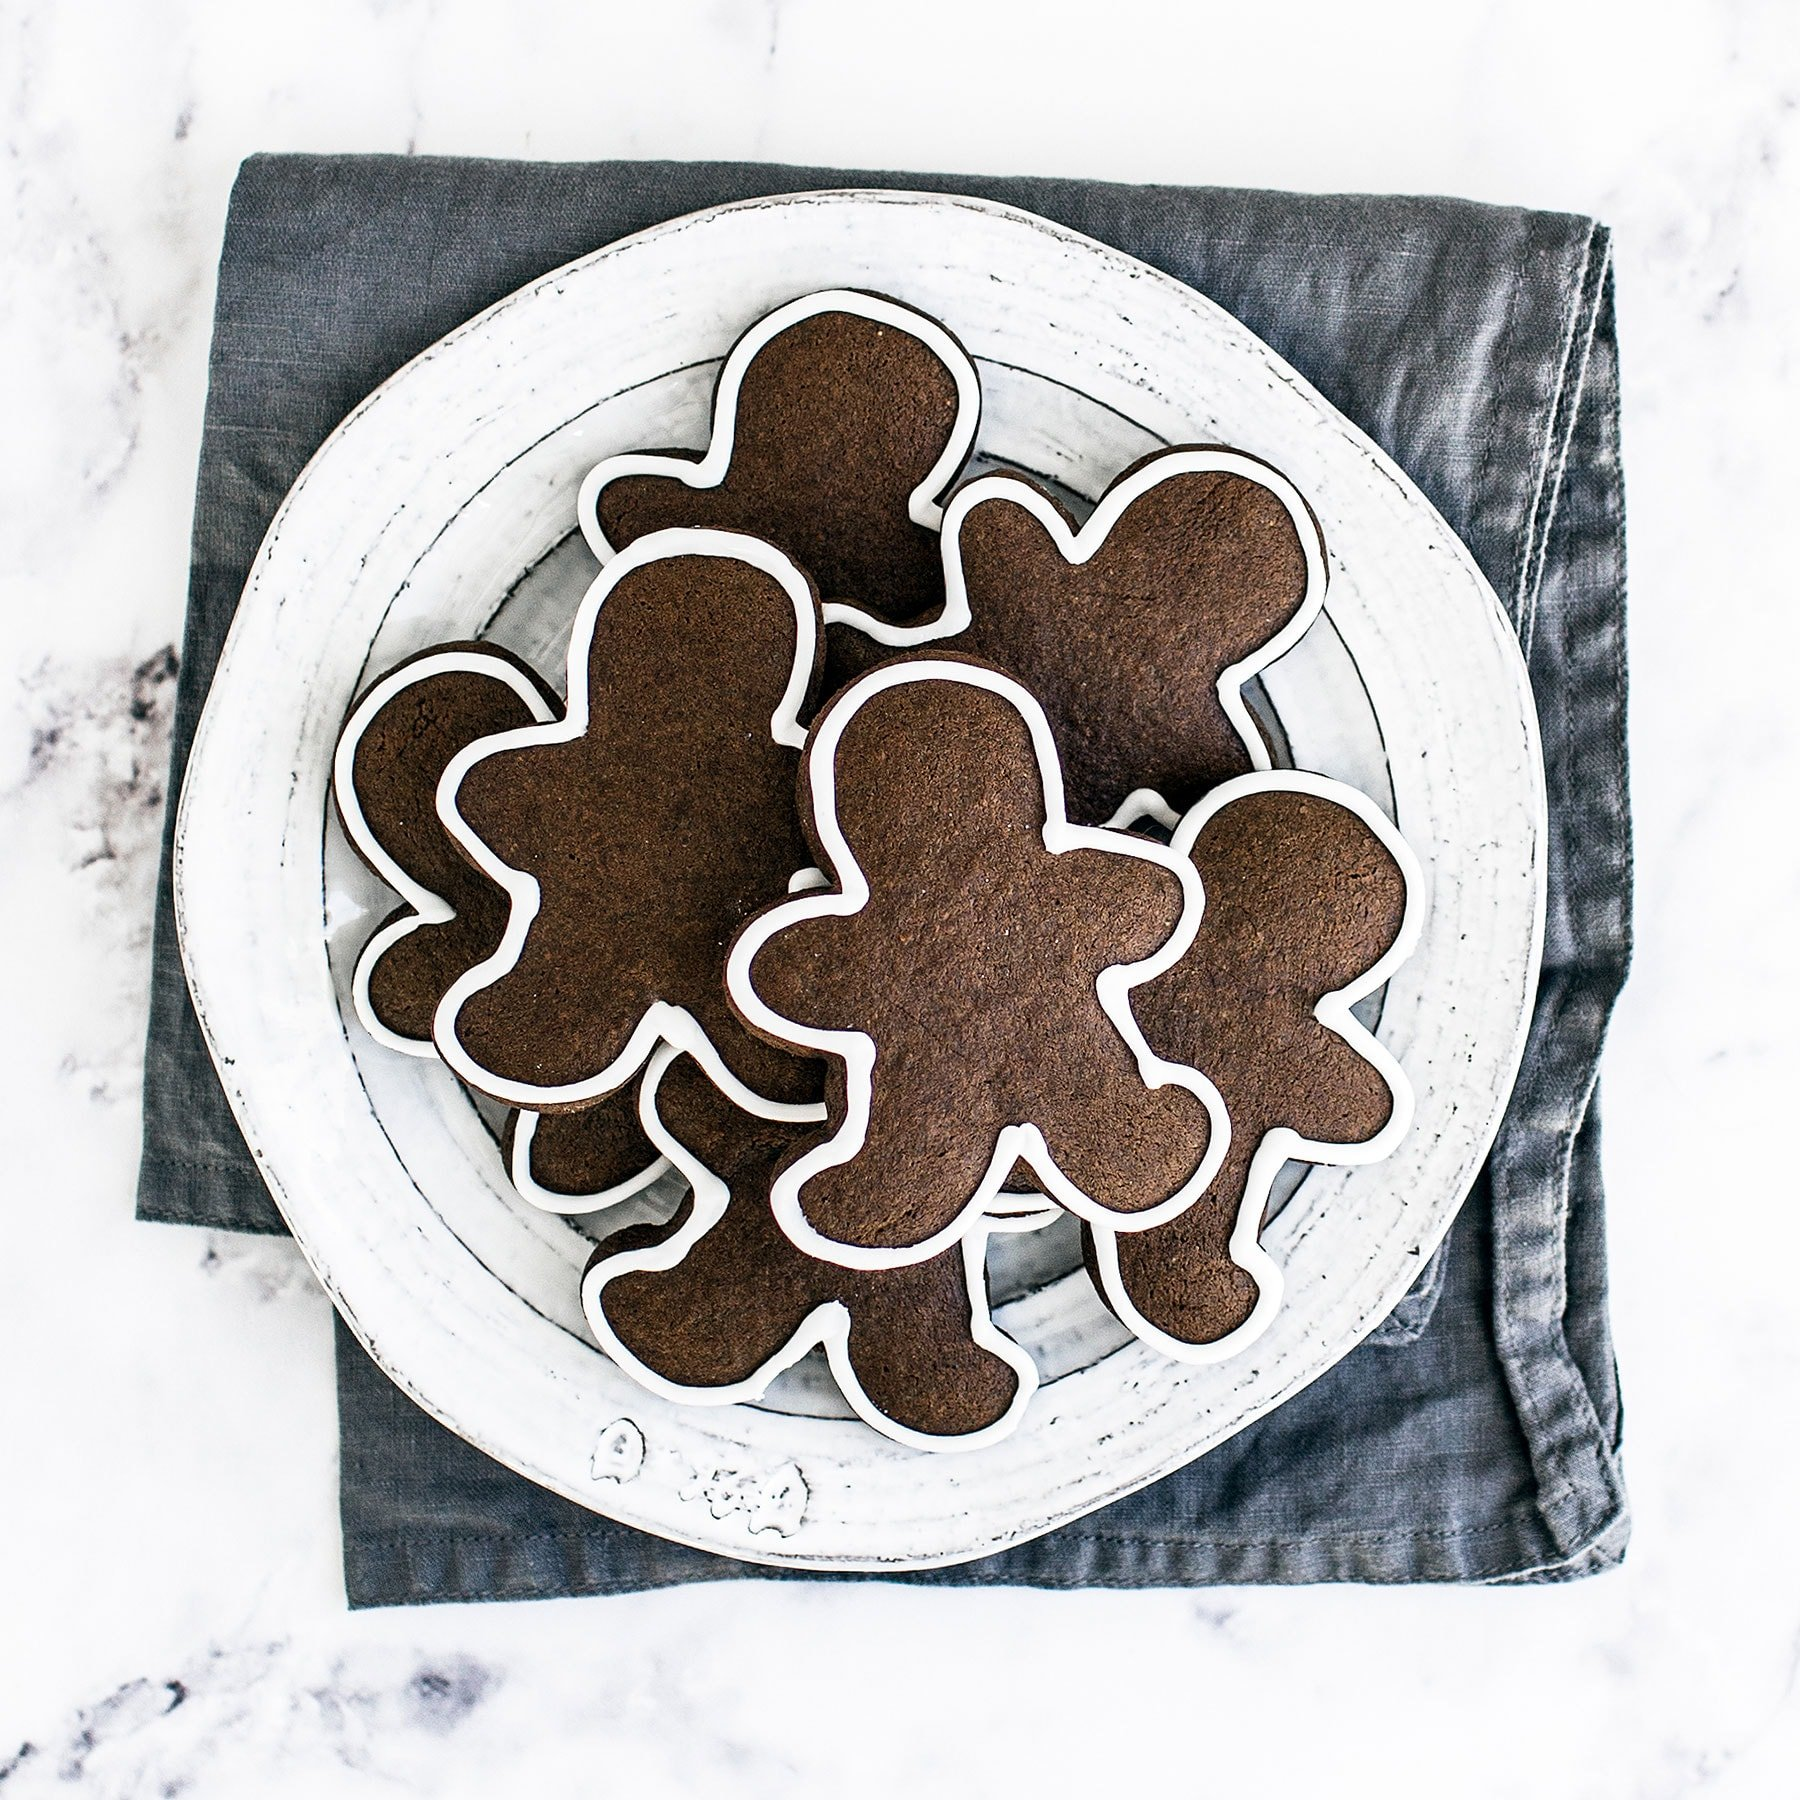 Easy Gingerbread Cookies are thick, soft, and perfectly maintain their adorable shape. This dough is a dream to work with and the cookies can be made ahead of time! Easy cookie icing included.